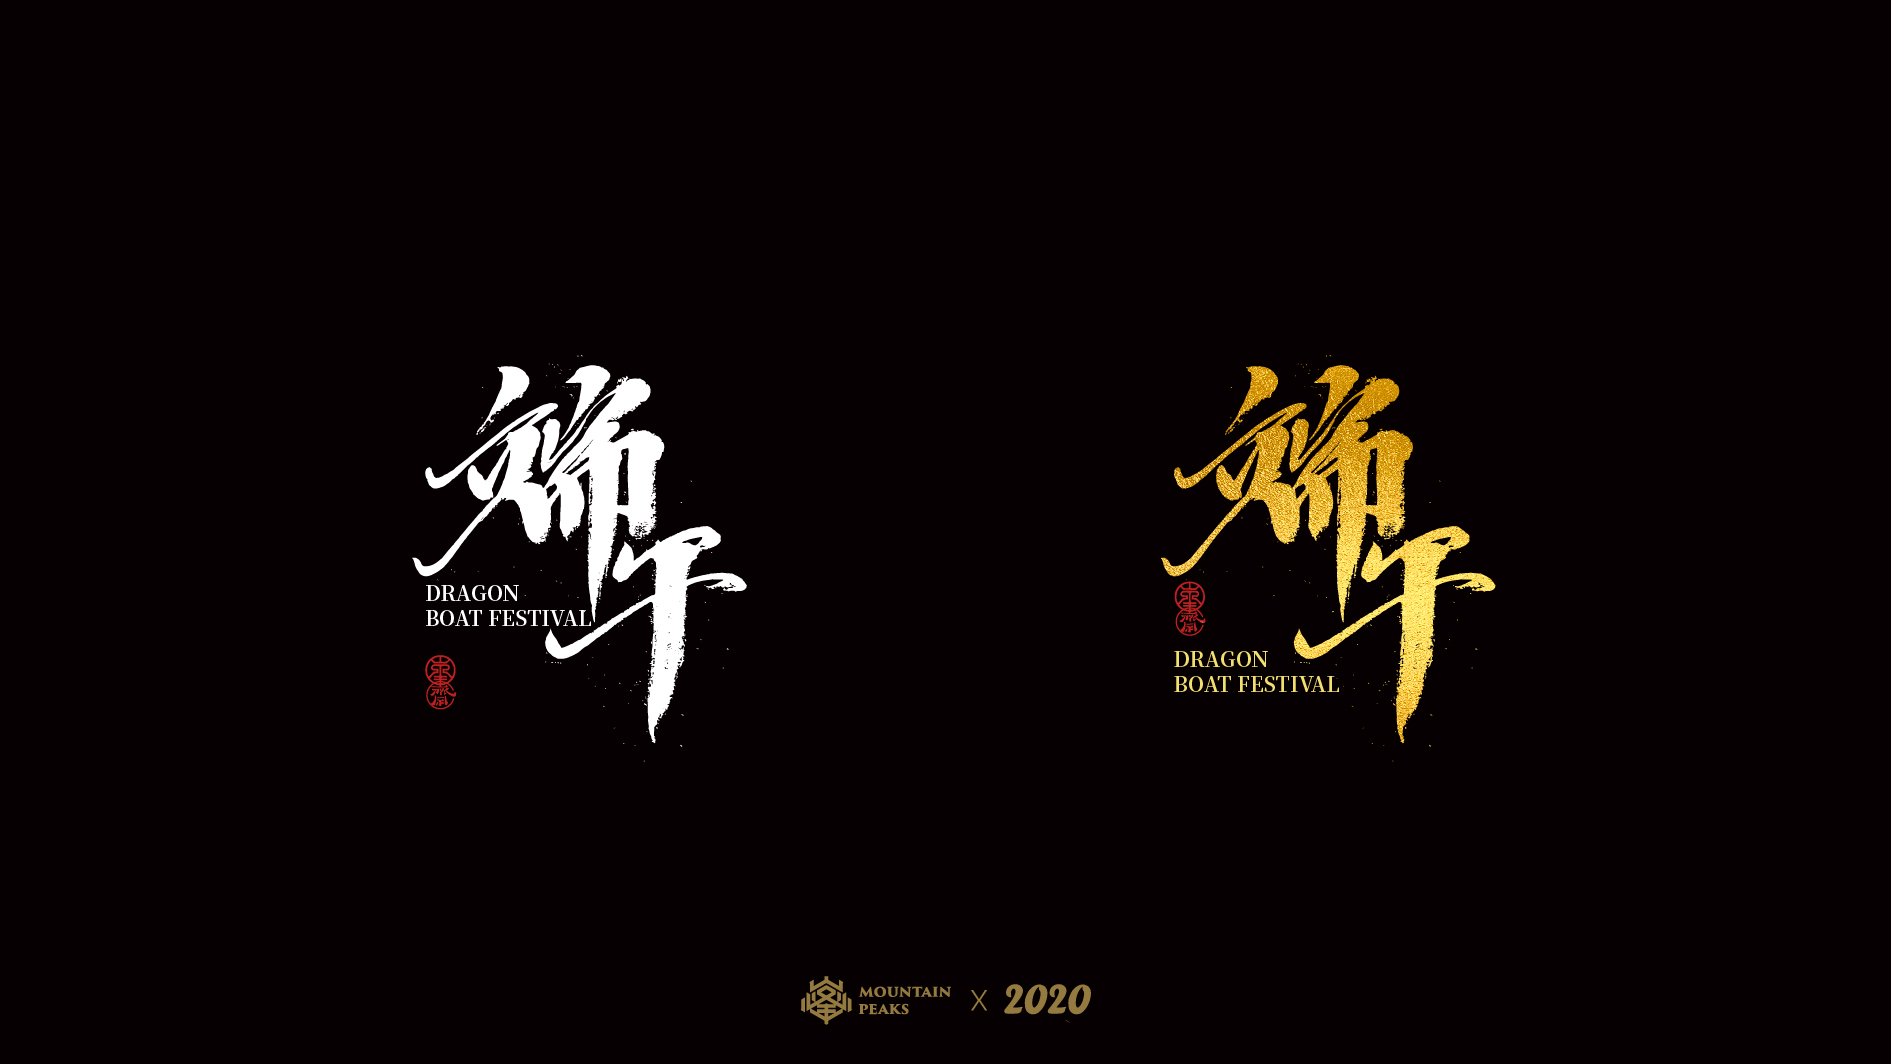 Several font designs for Dragon Boat Festival